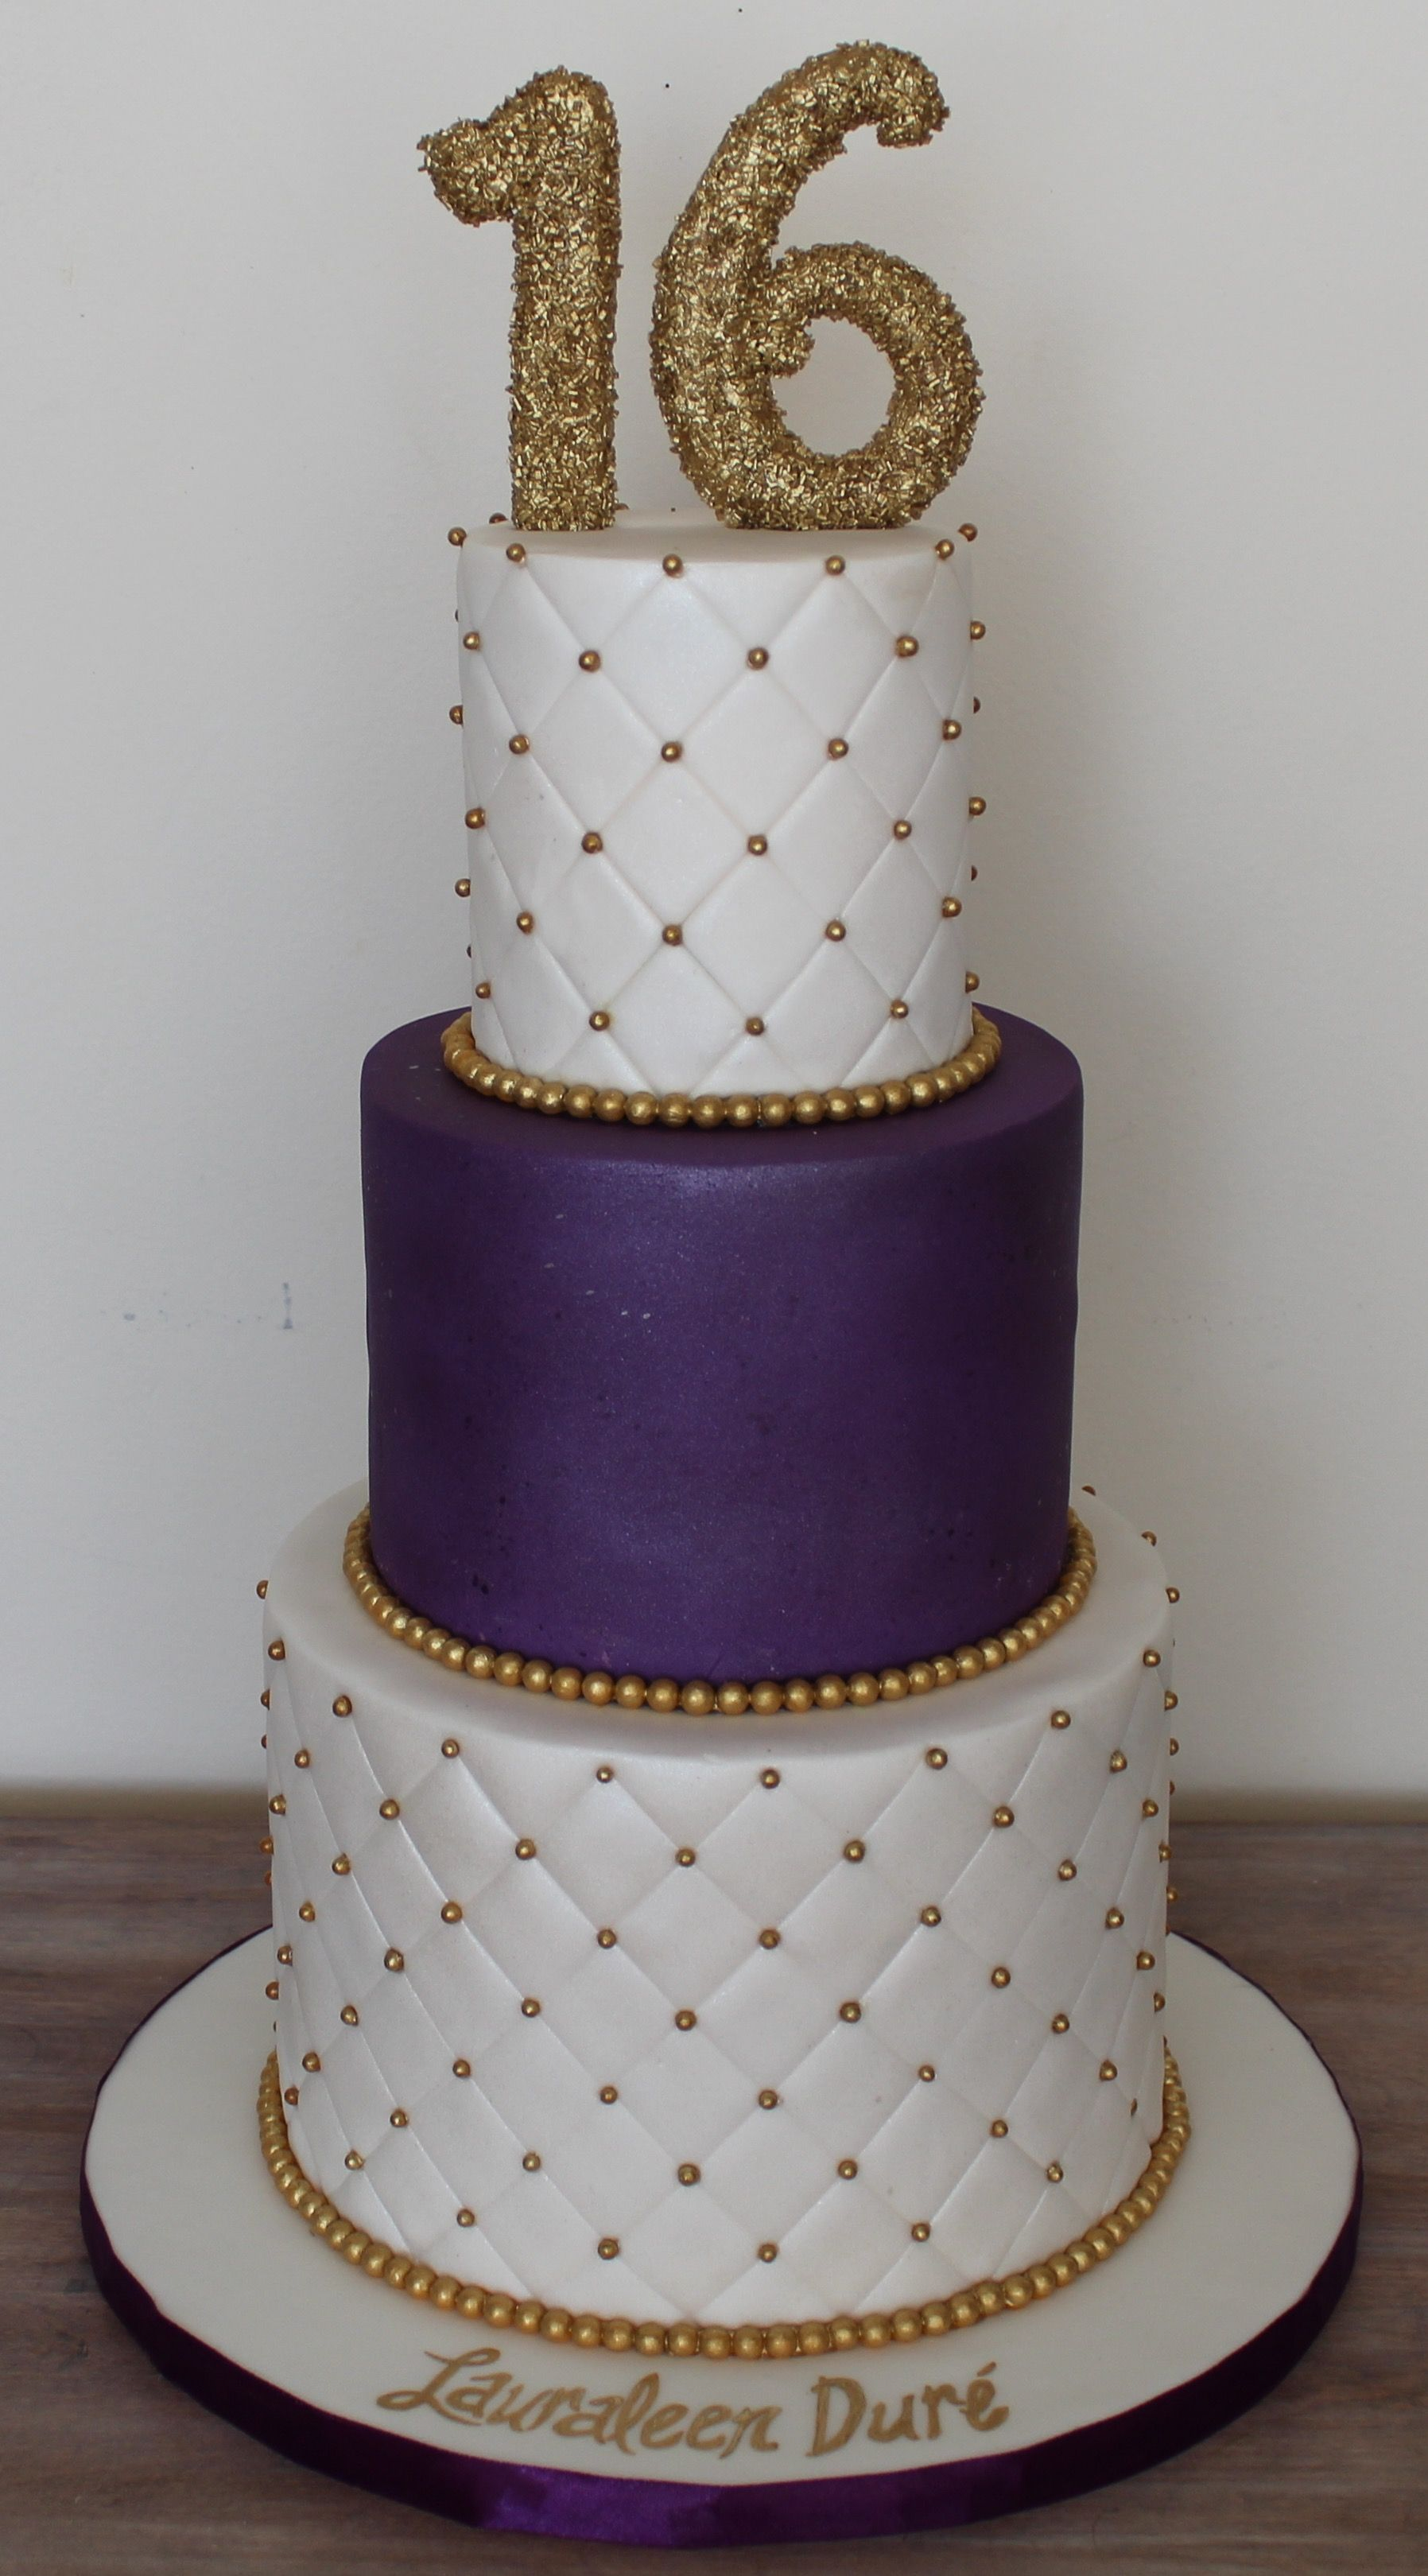 Sweet Sixteen 16 birthday cake elegant clean plum royal purple and